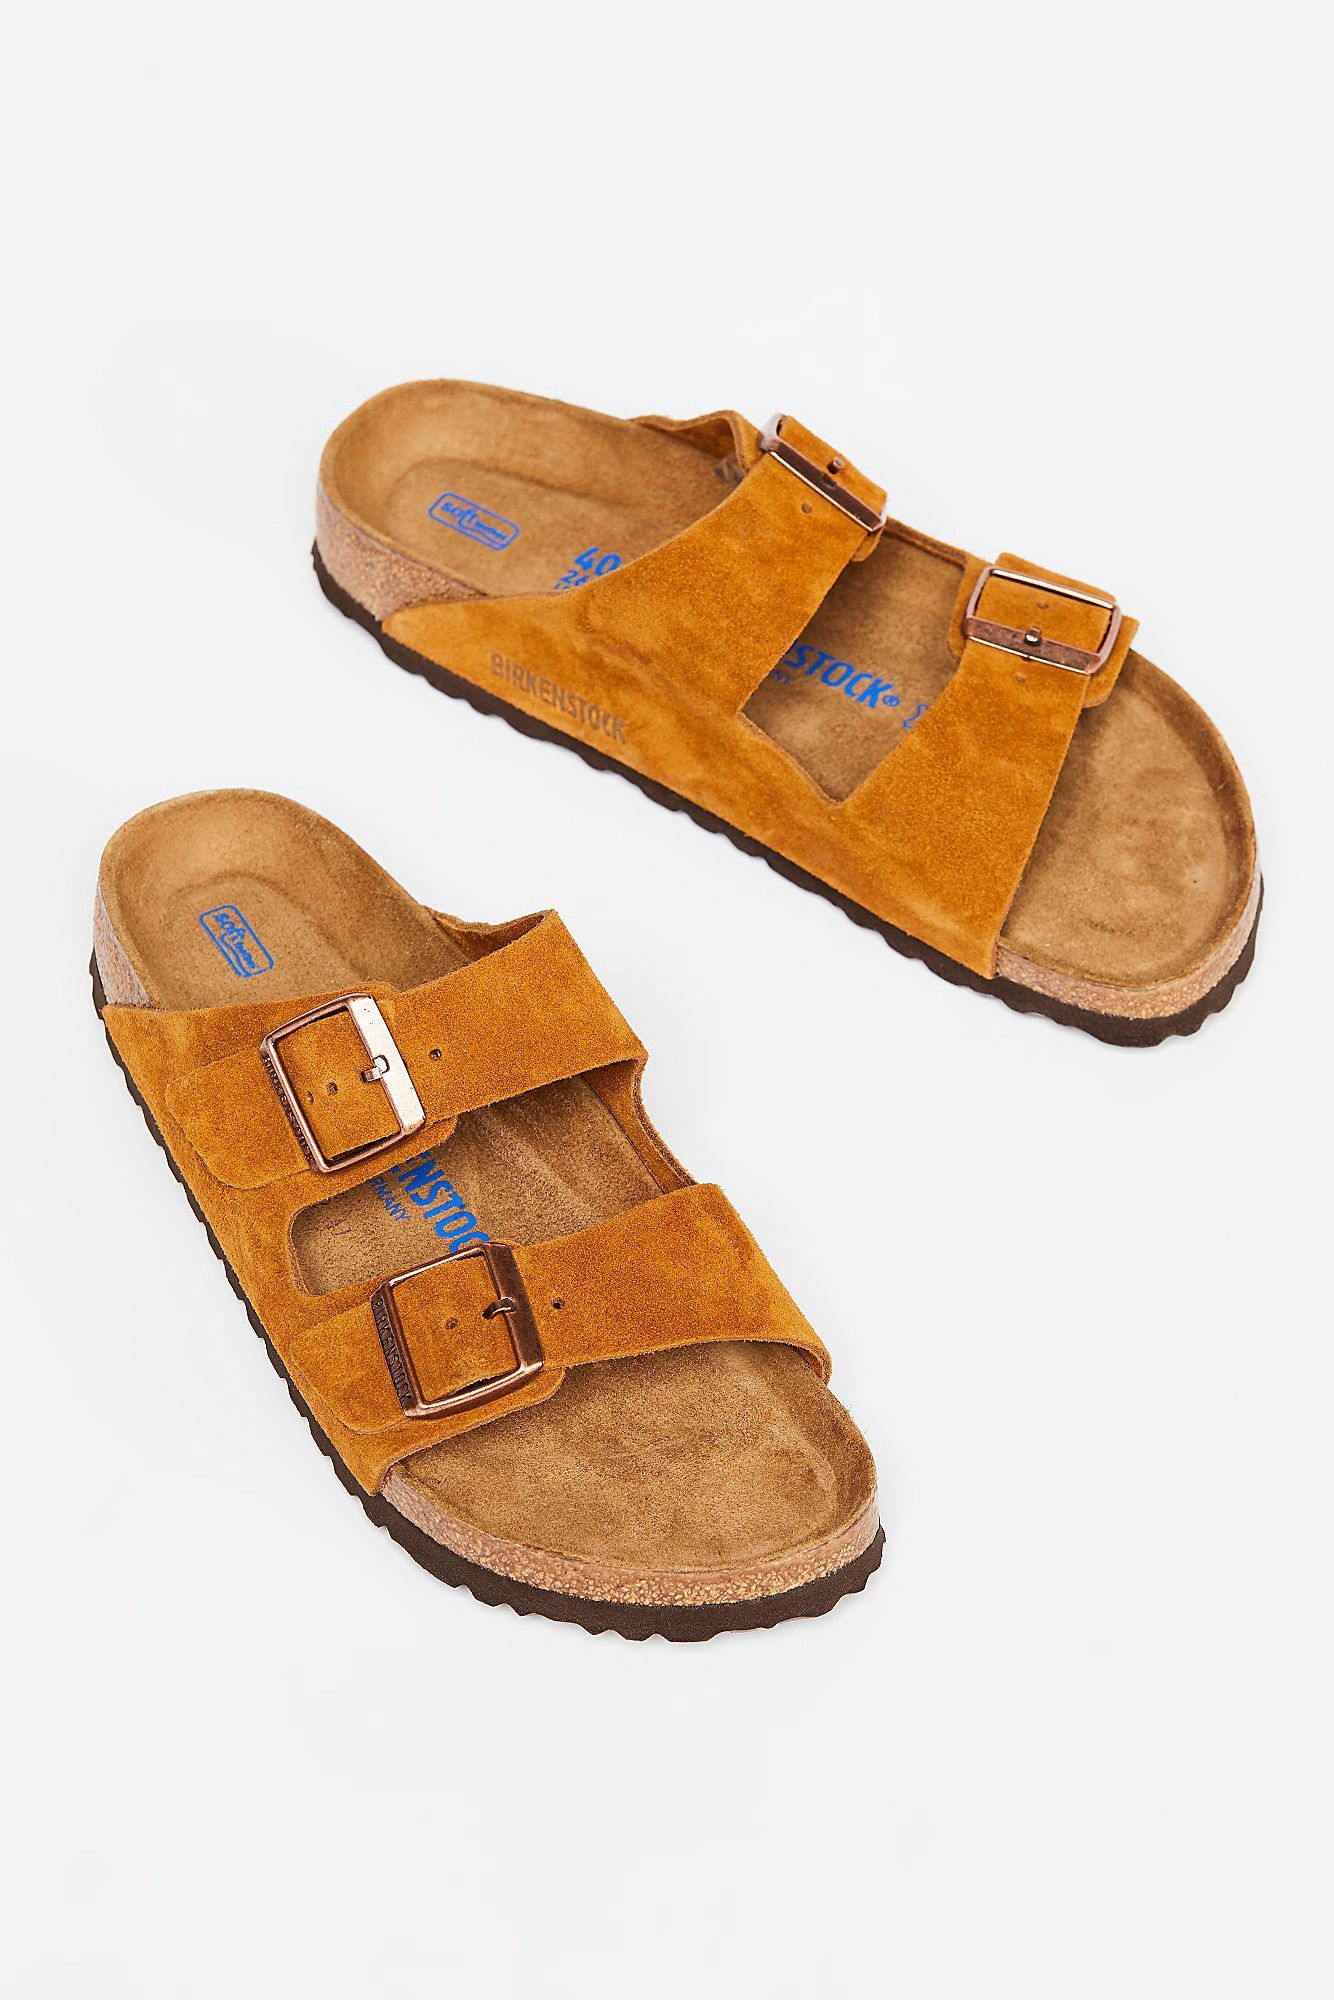 bad90c9a Free People Arizona Soft Footbed Birkenstock - Mink 36 Euro in 2019 ...